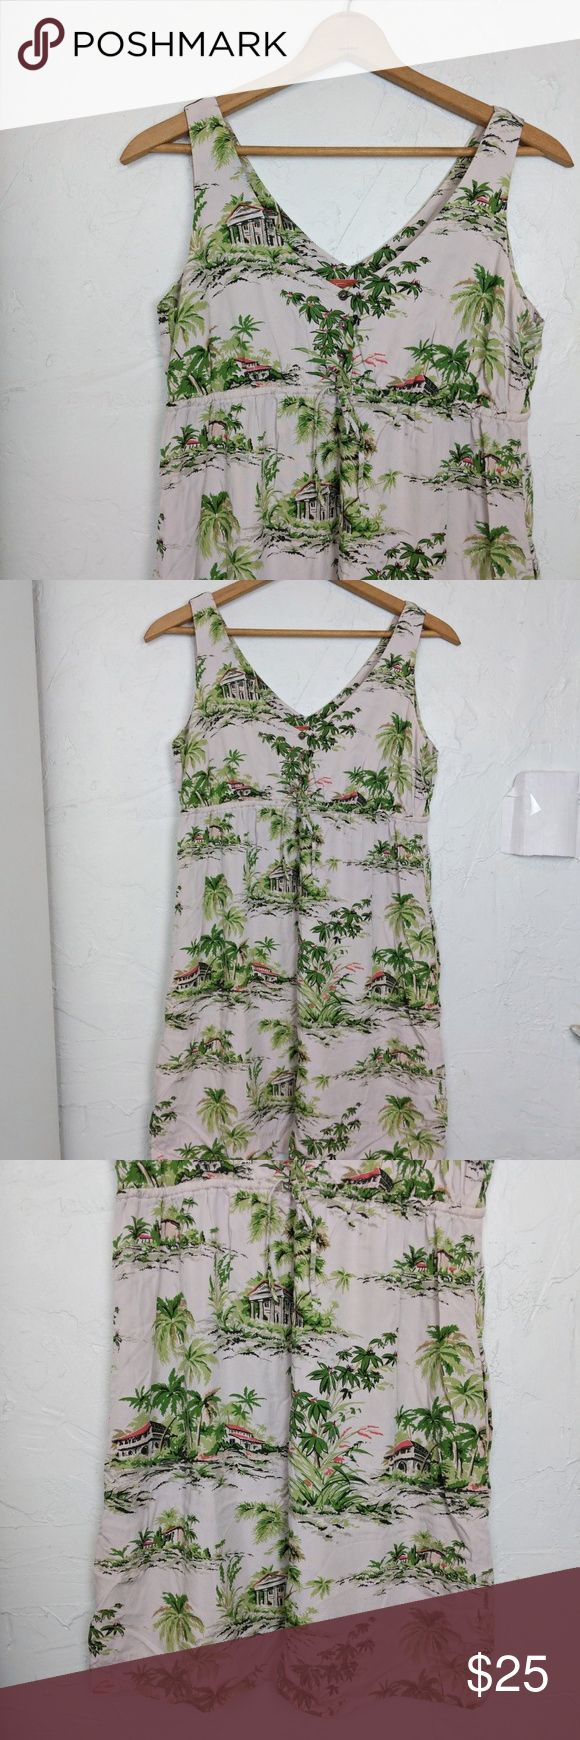 "Tommy Bahama Relax Tropical Hawaiian Print Dress Features a slight v-neck with three buttons, an adjustable drawstring waist, and a fun tropical print  Lightweight and perfect for summer or vacation!  100% rayon  Great used condition--no rips, stains, or tears  Length: ~34.5""  Bust (doubled): 36"" Tommy Bahama Dresses"